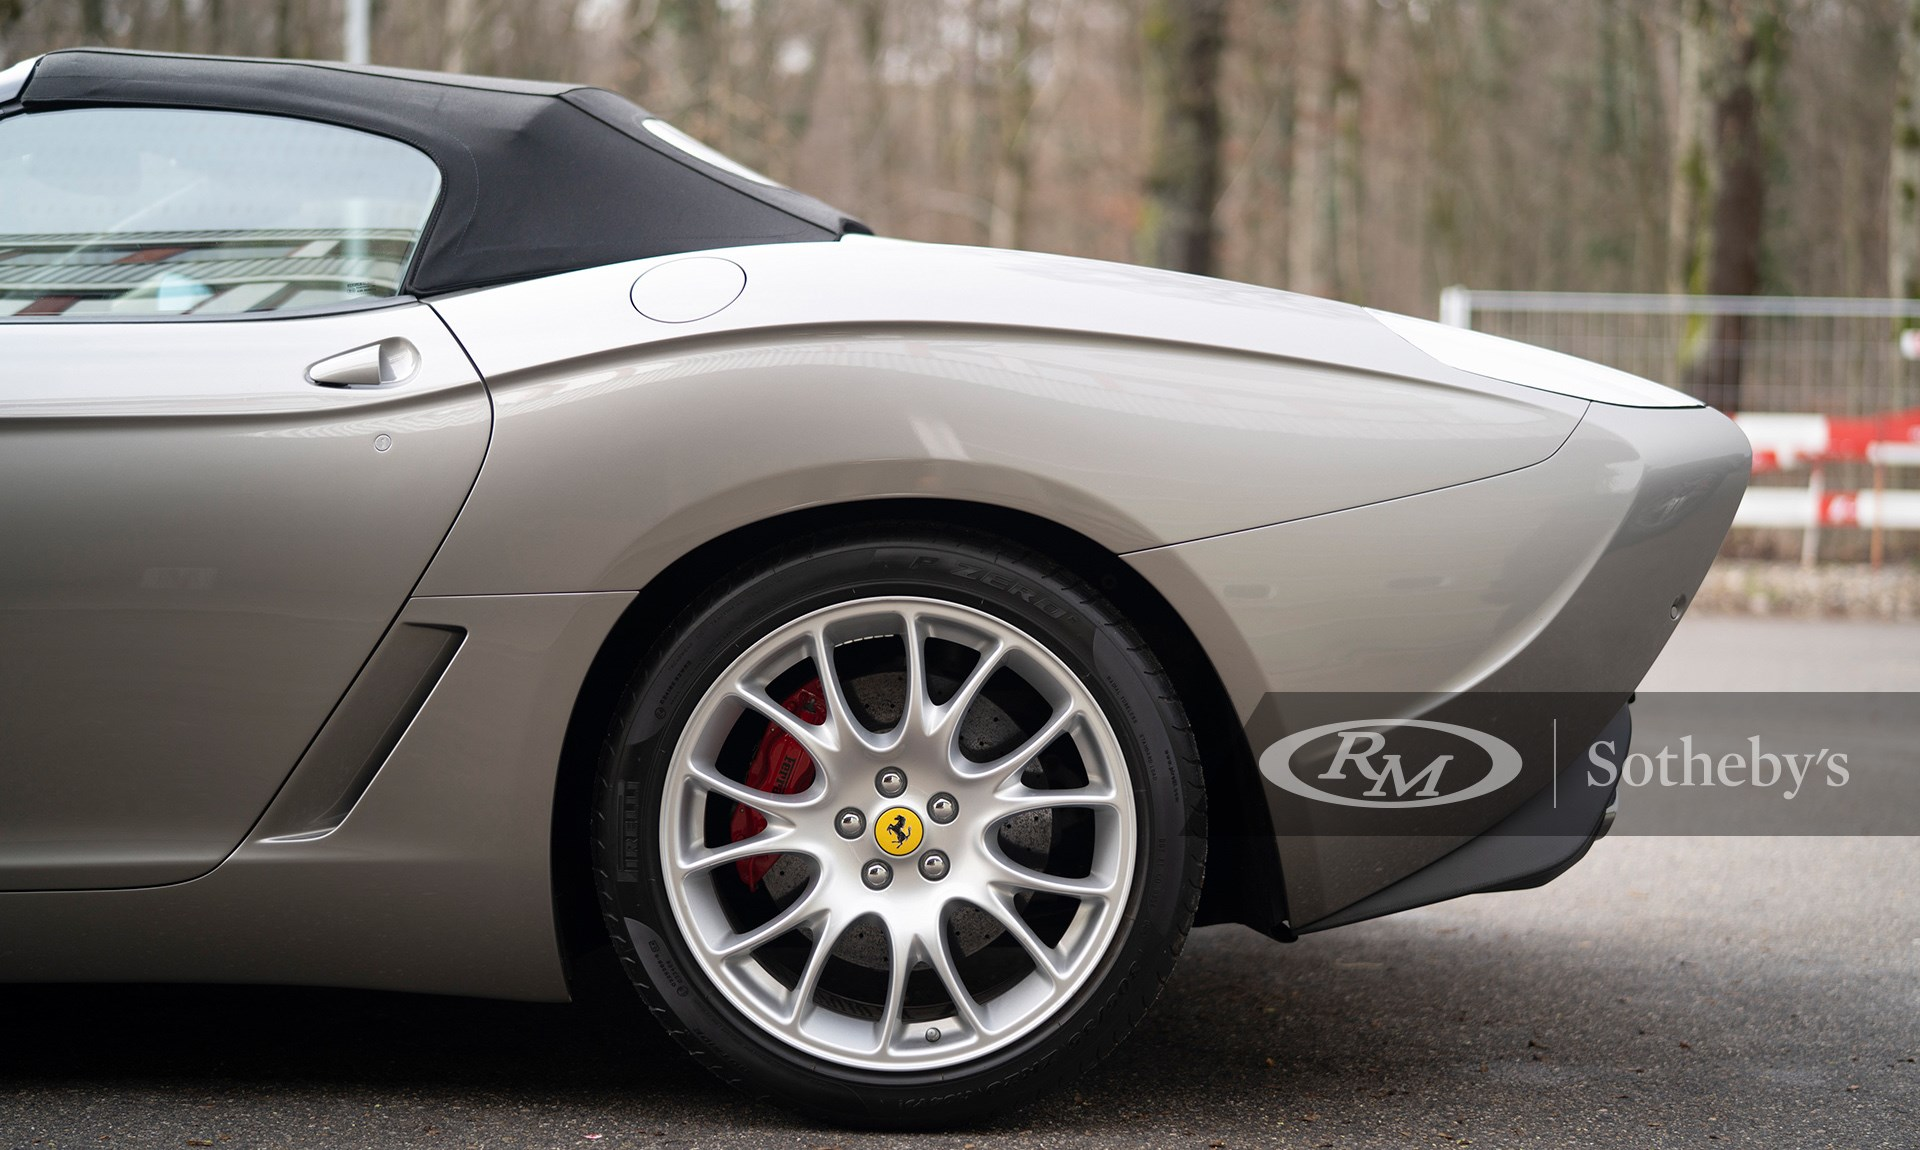 Side profile of the Gunmetal Grey 2009 Ferrari 599 GTZ Nibbio Spyder by Zagato available at RM Sotheby's Paris Auction 2021